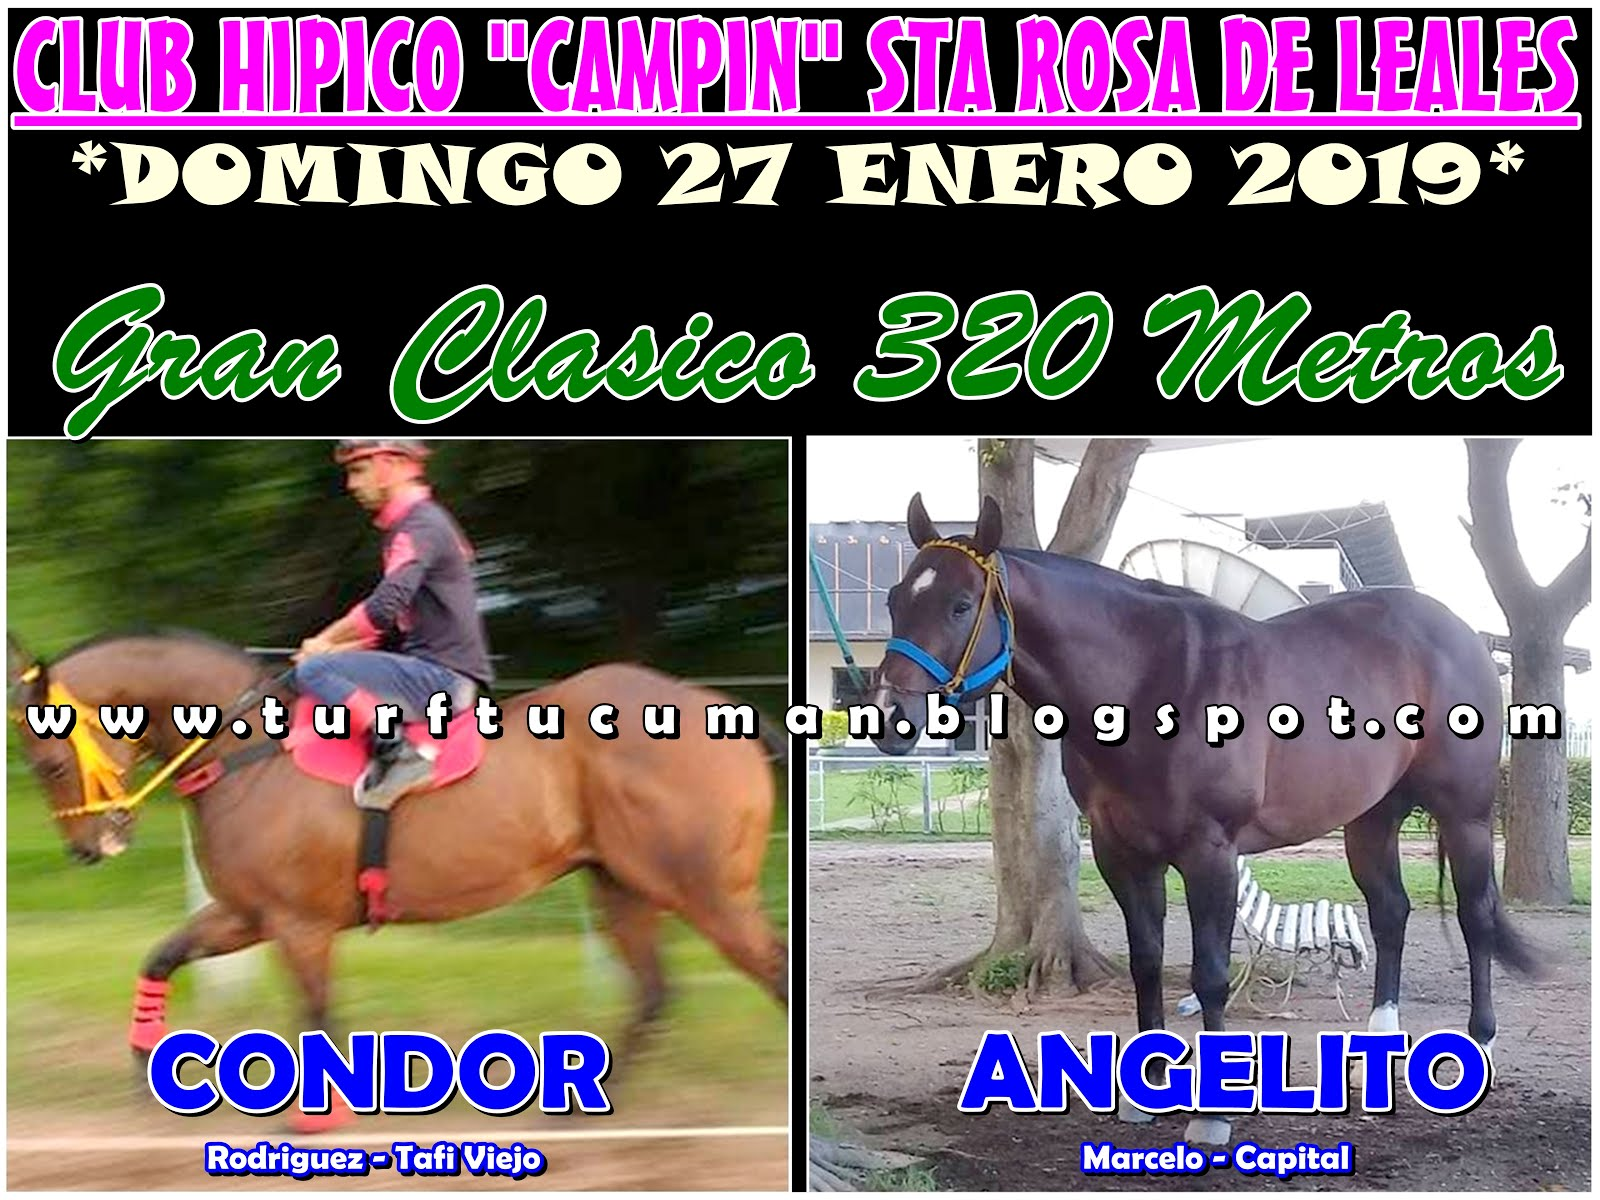 CONDOR VS ANGELITO